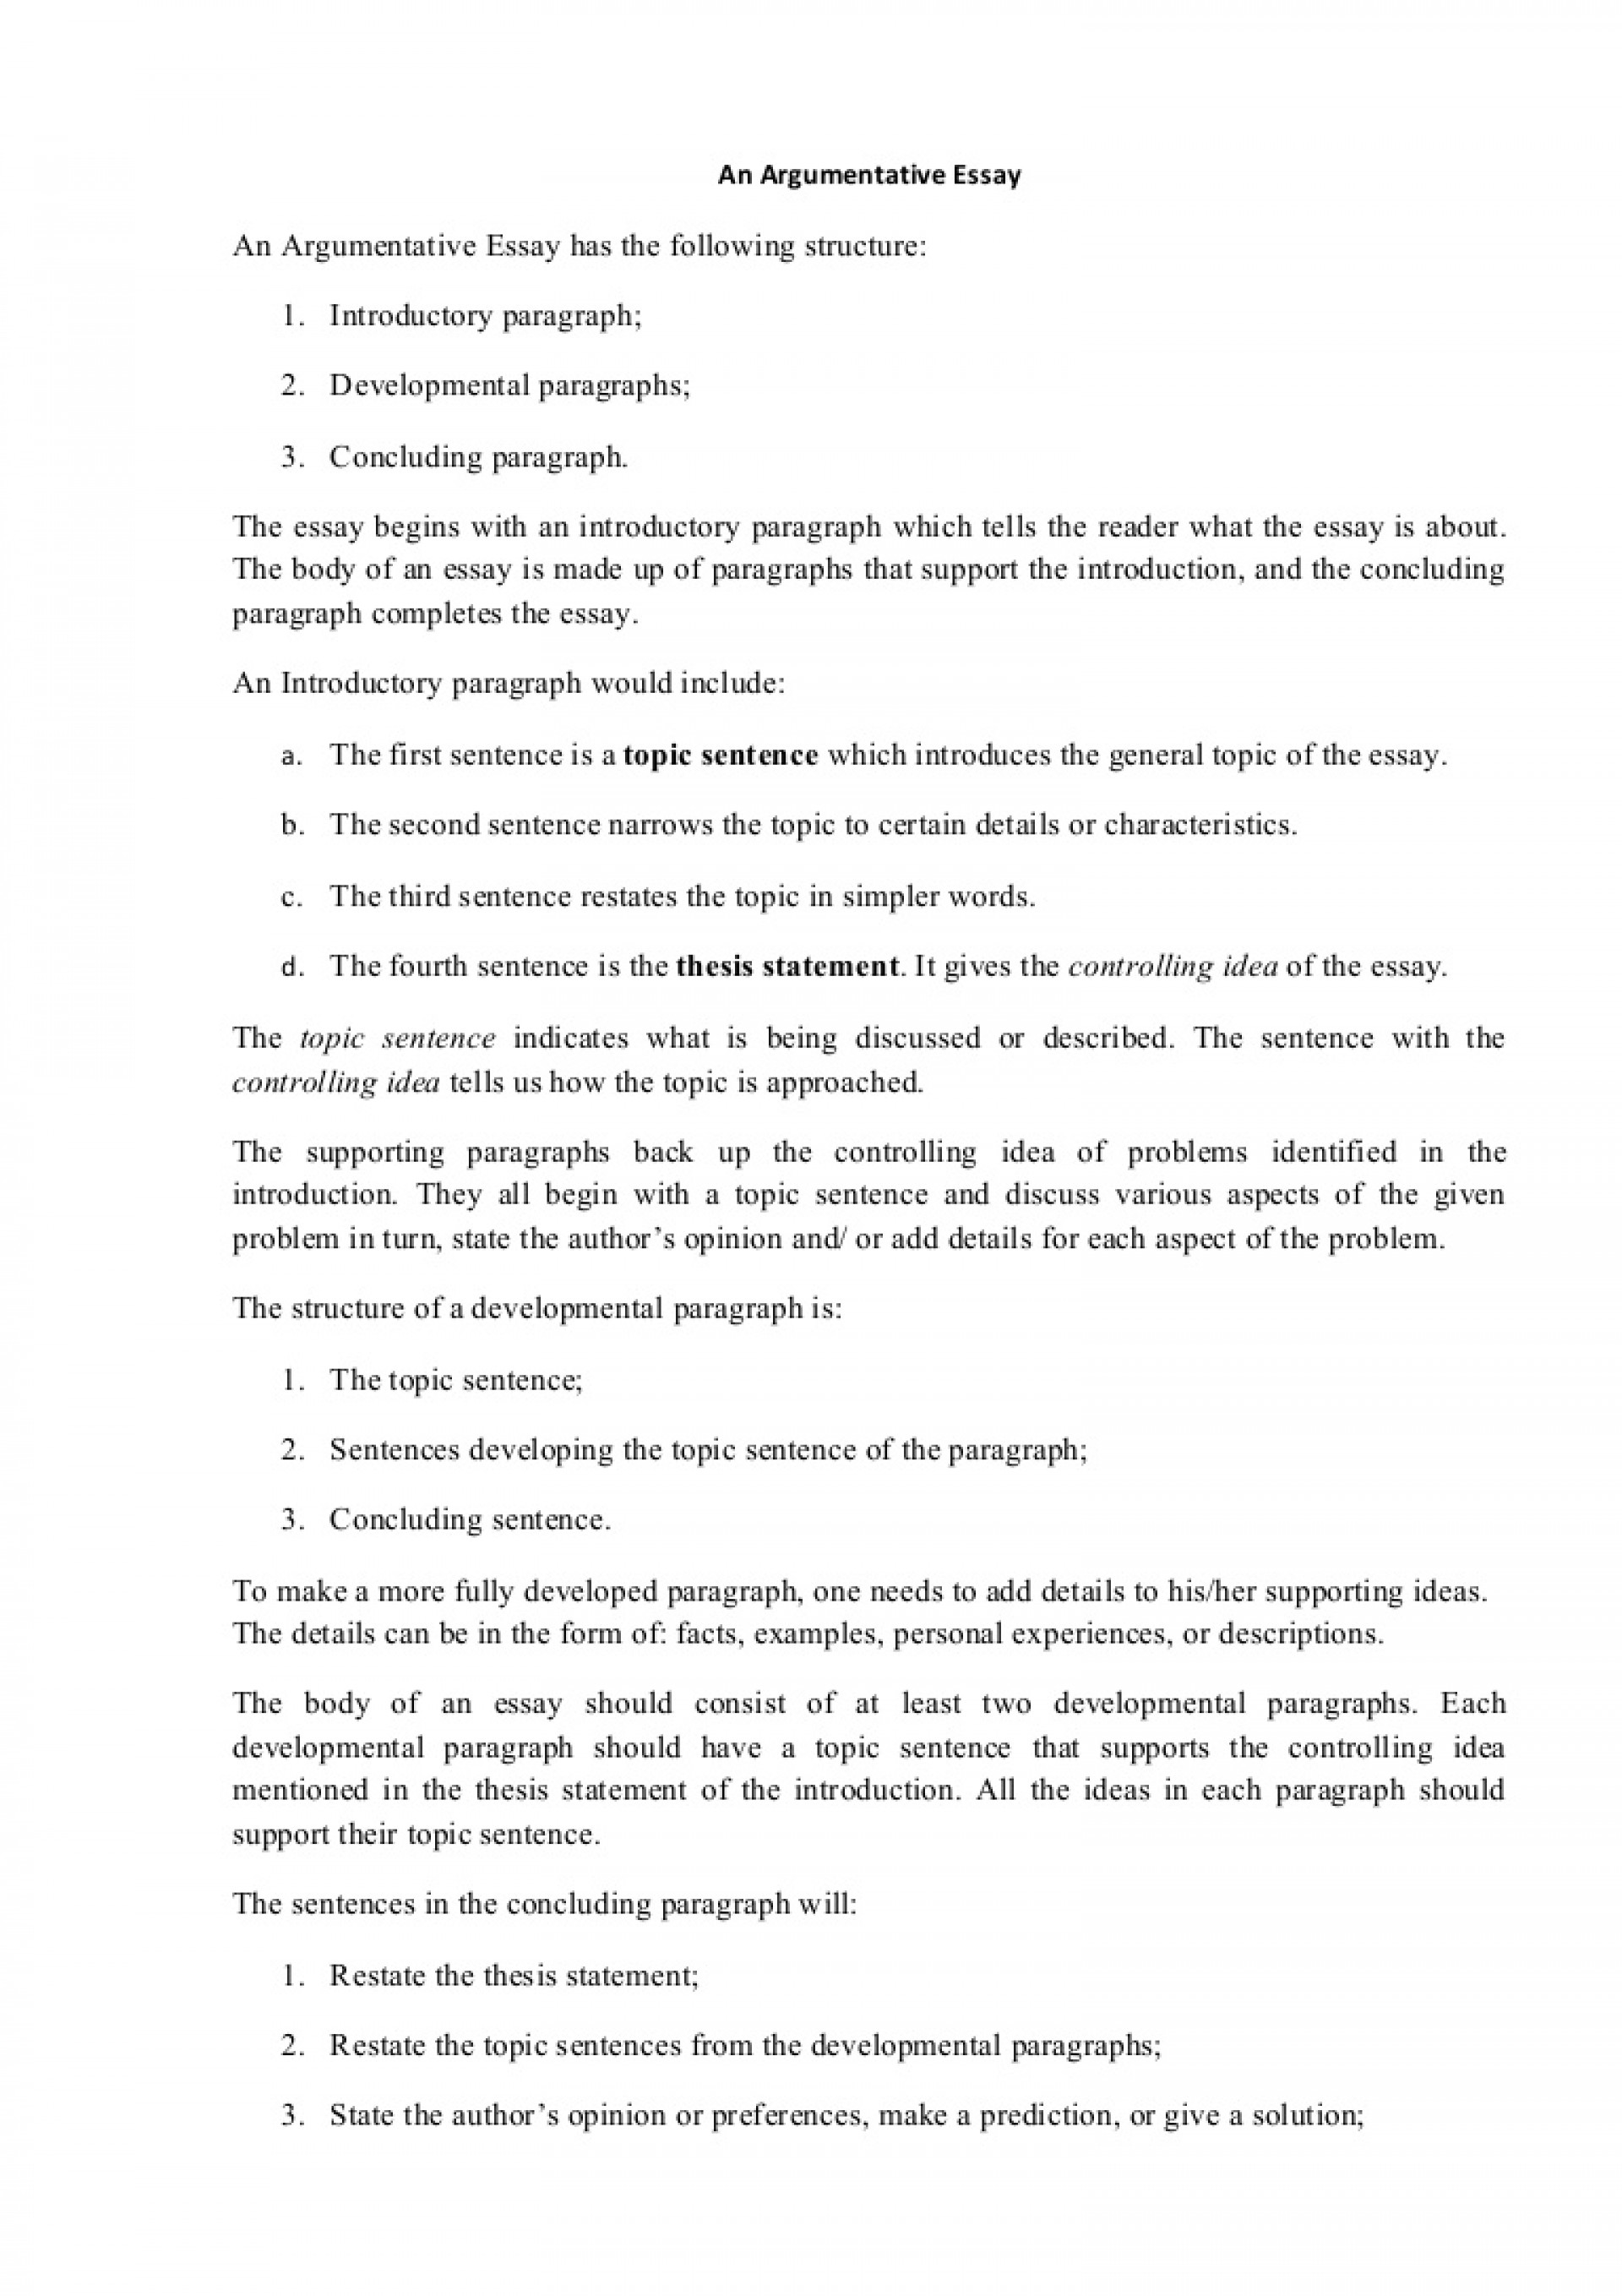 009 Argumentativeessaystructure Phpapp01 Thumbnail Essay Example Which Statement Best Describes The Introduction Of An Fearsome Argumentative Quizlet 1920